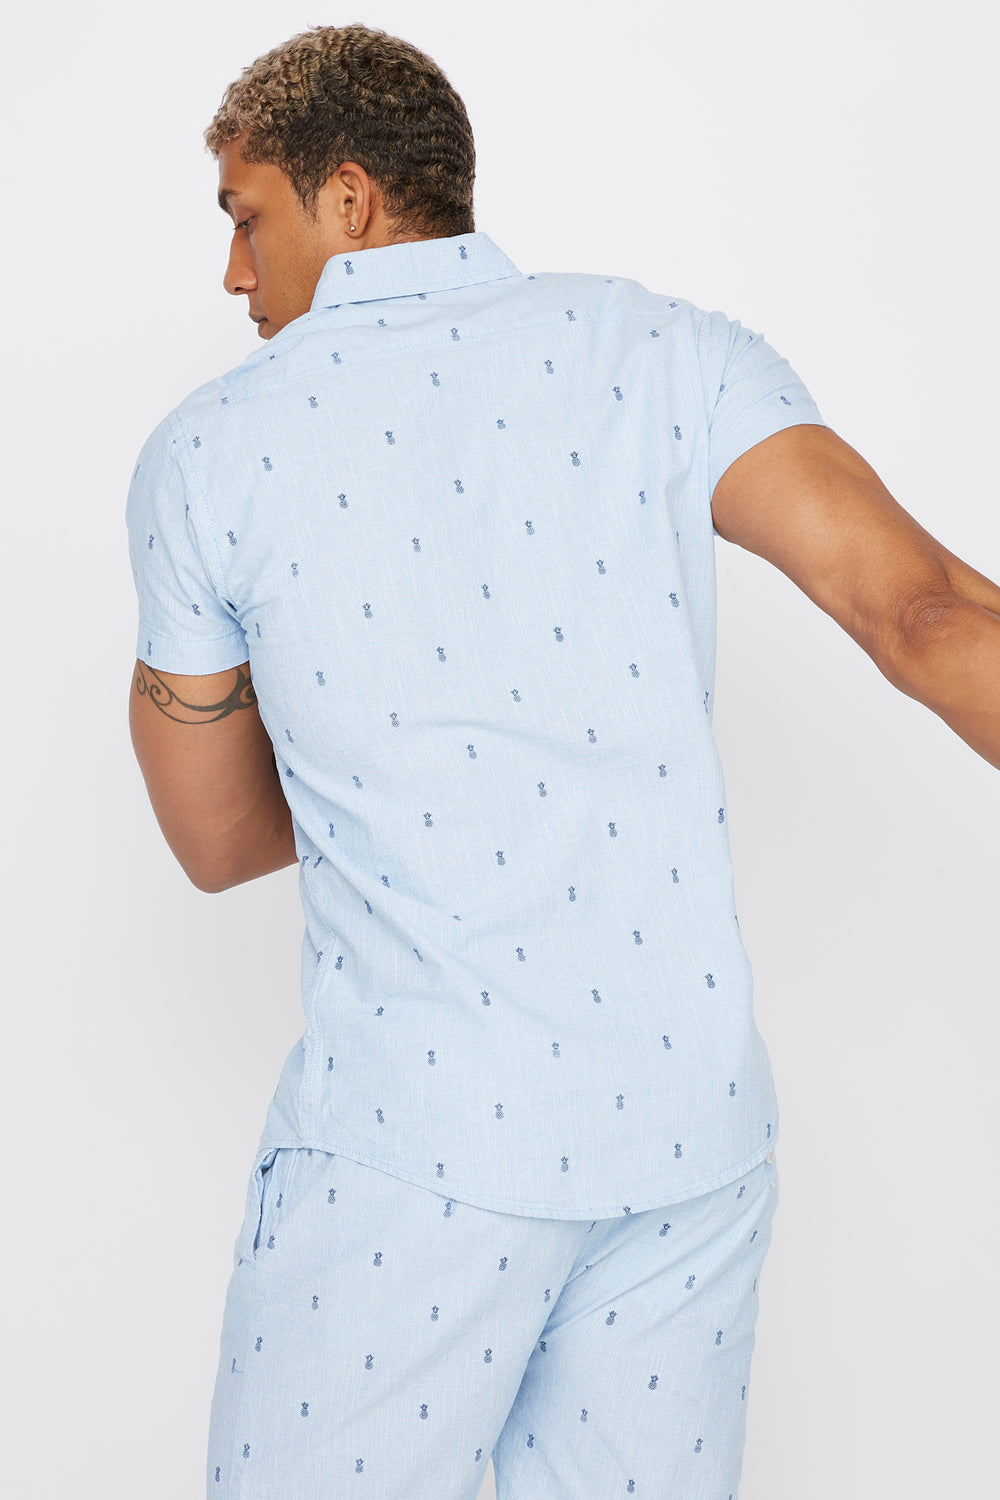 Micro Print Short Sleeve Button-Up Shirt Blue